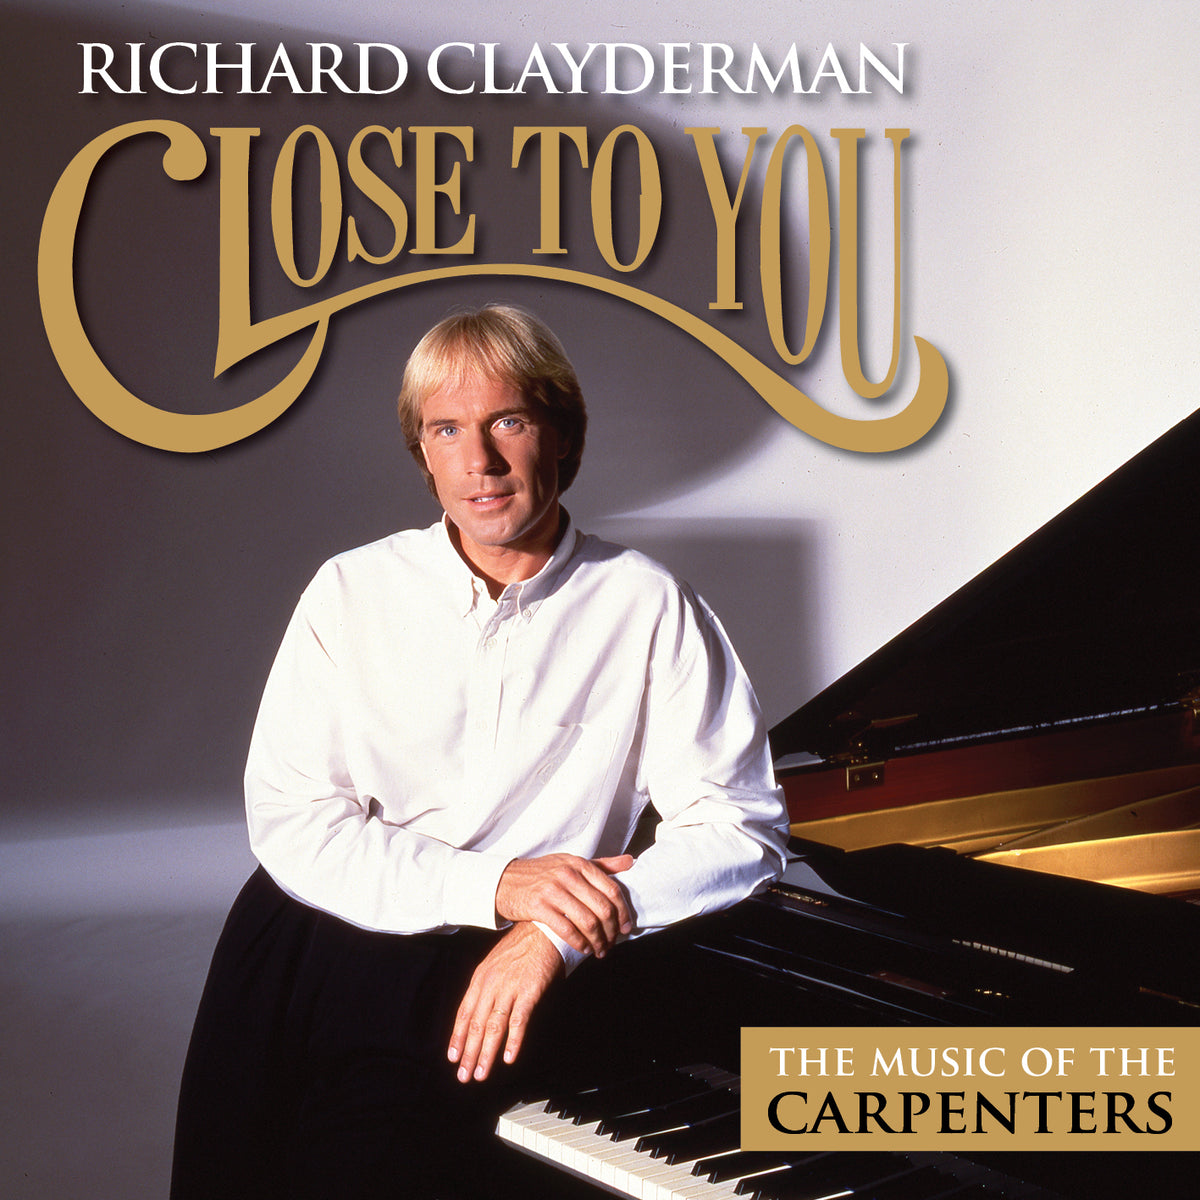 RICHARD CLAYDERMAN - CLOSE TO YOU.jpg